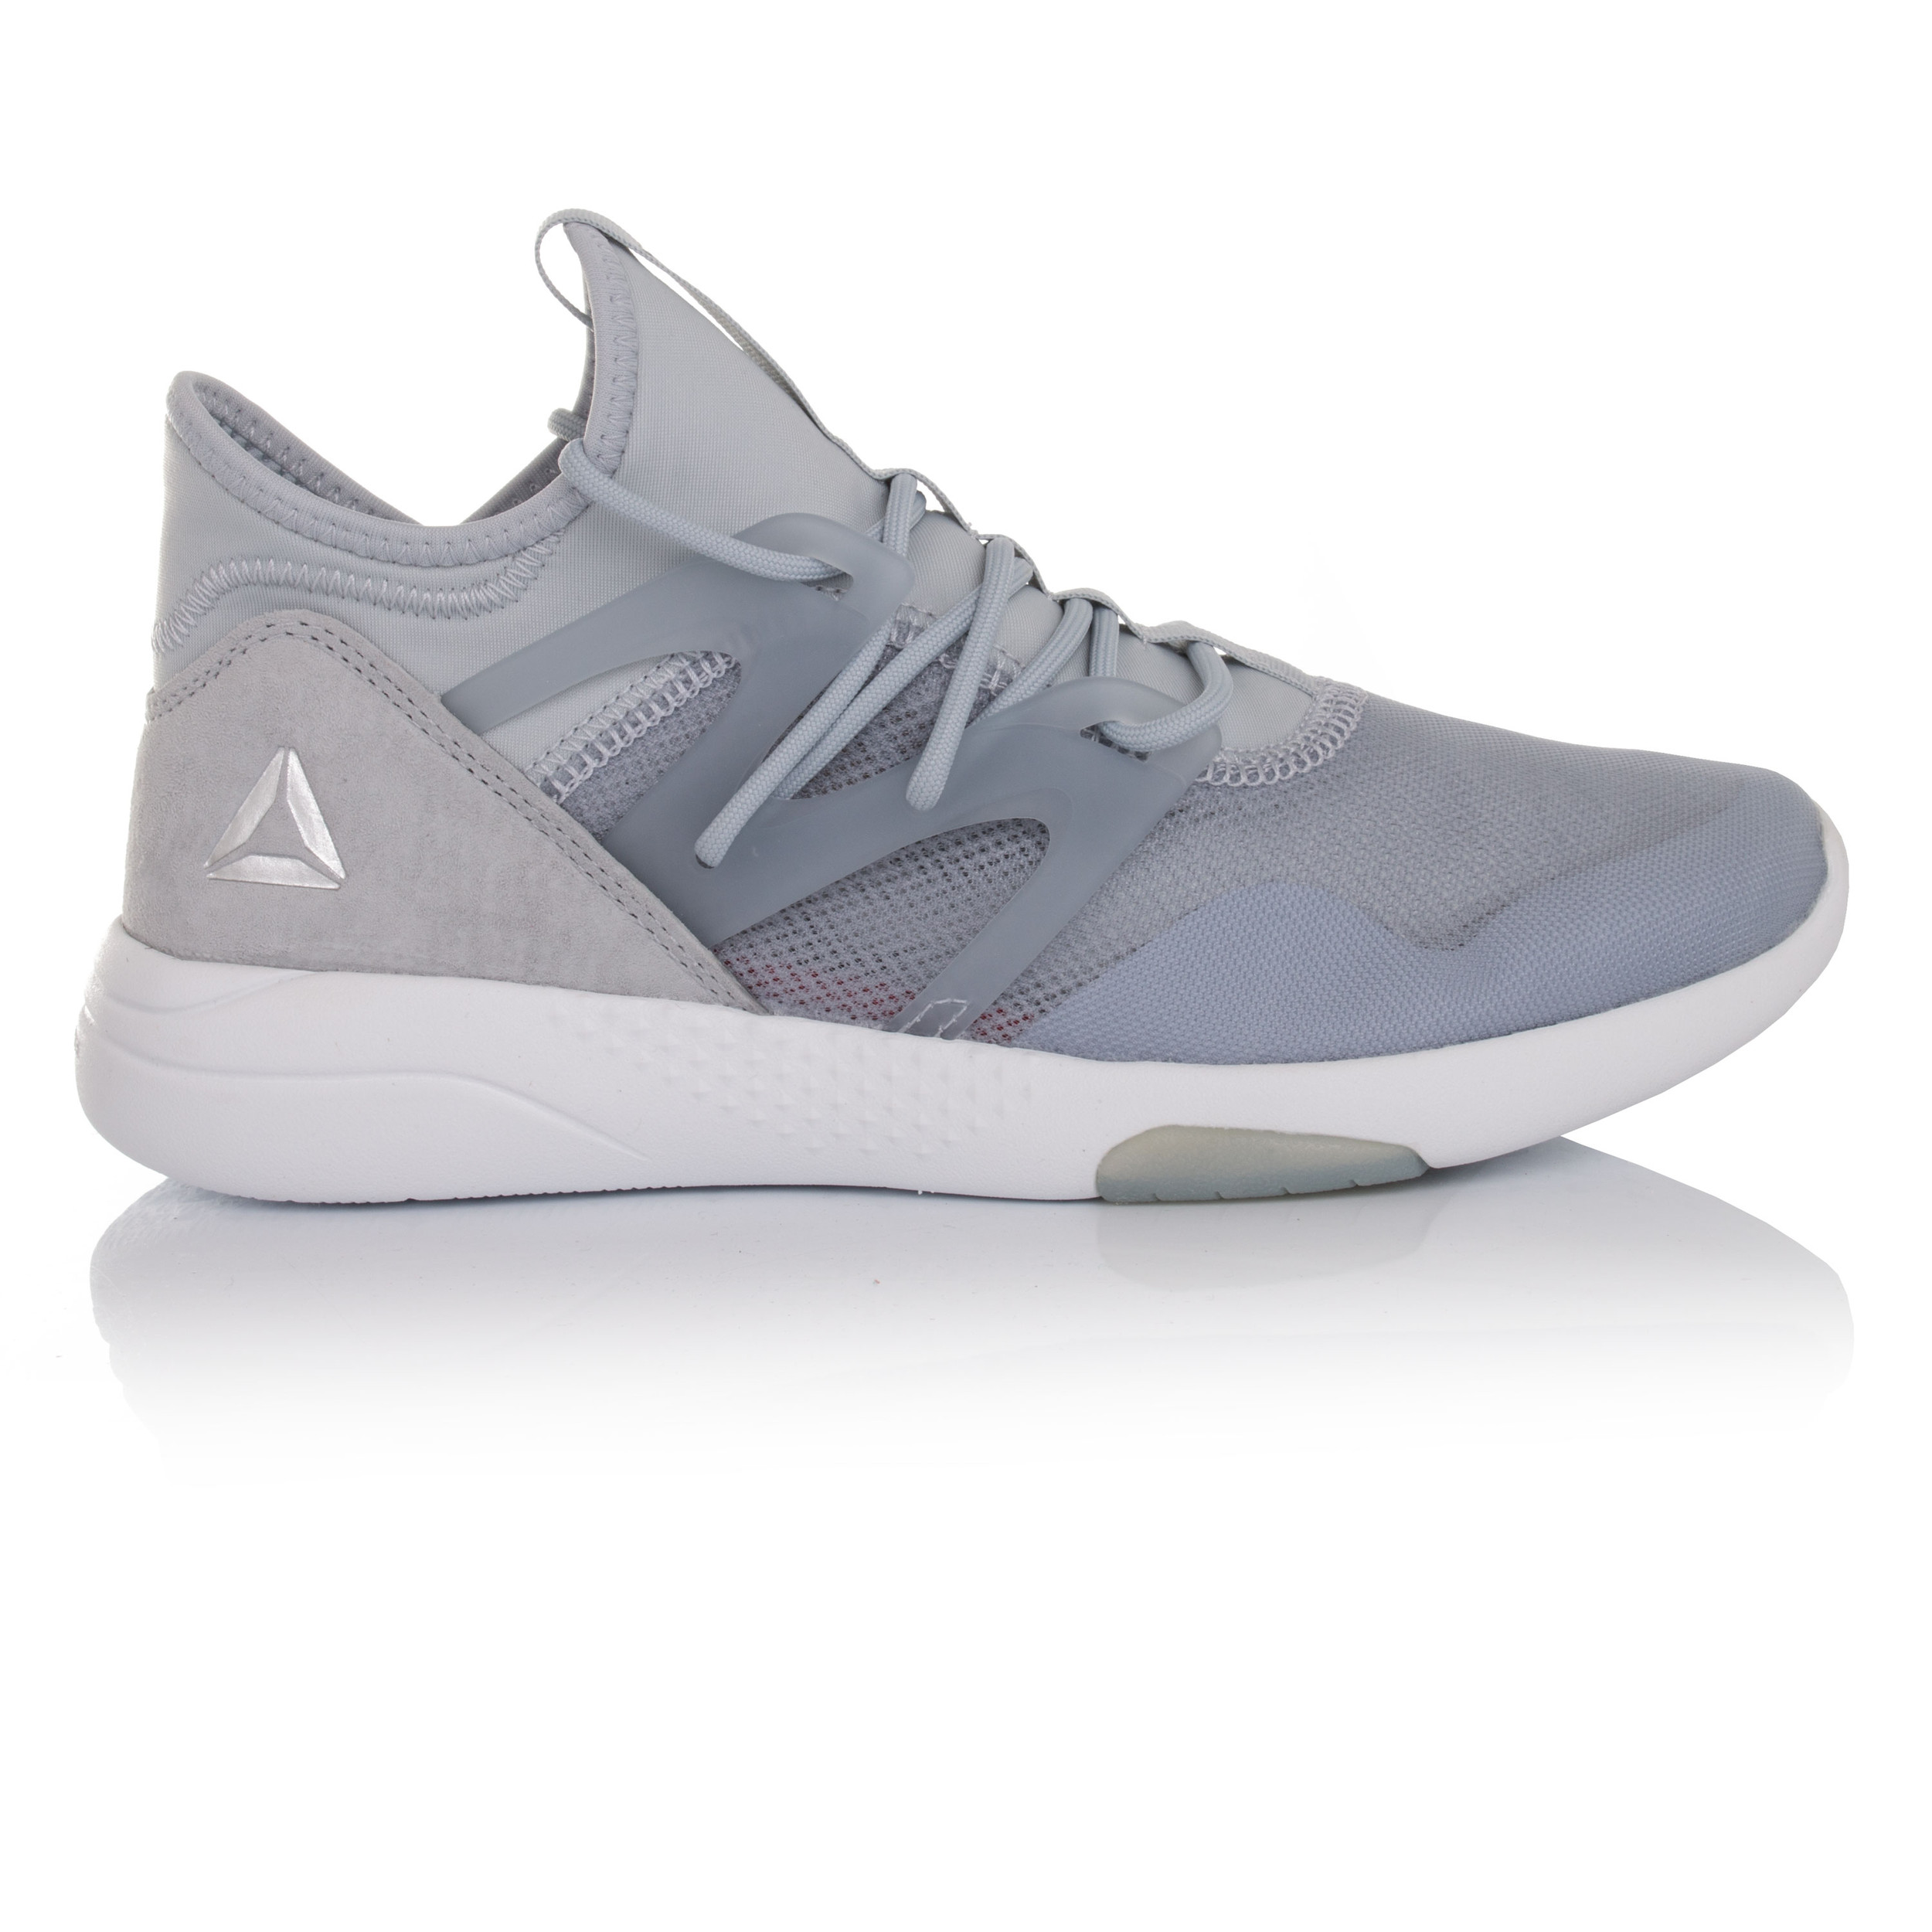 Reebok Hayasu Womens Grey Dance Training Sports Shoes Trainers Pumps